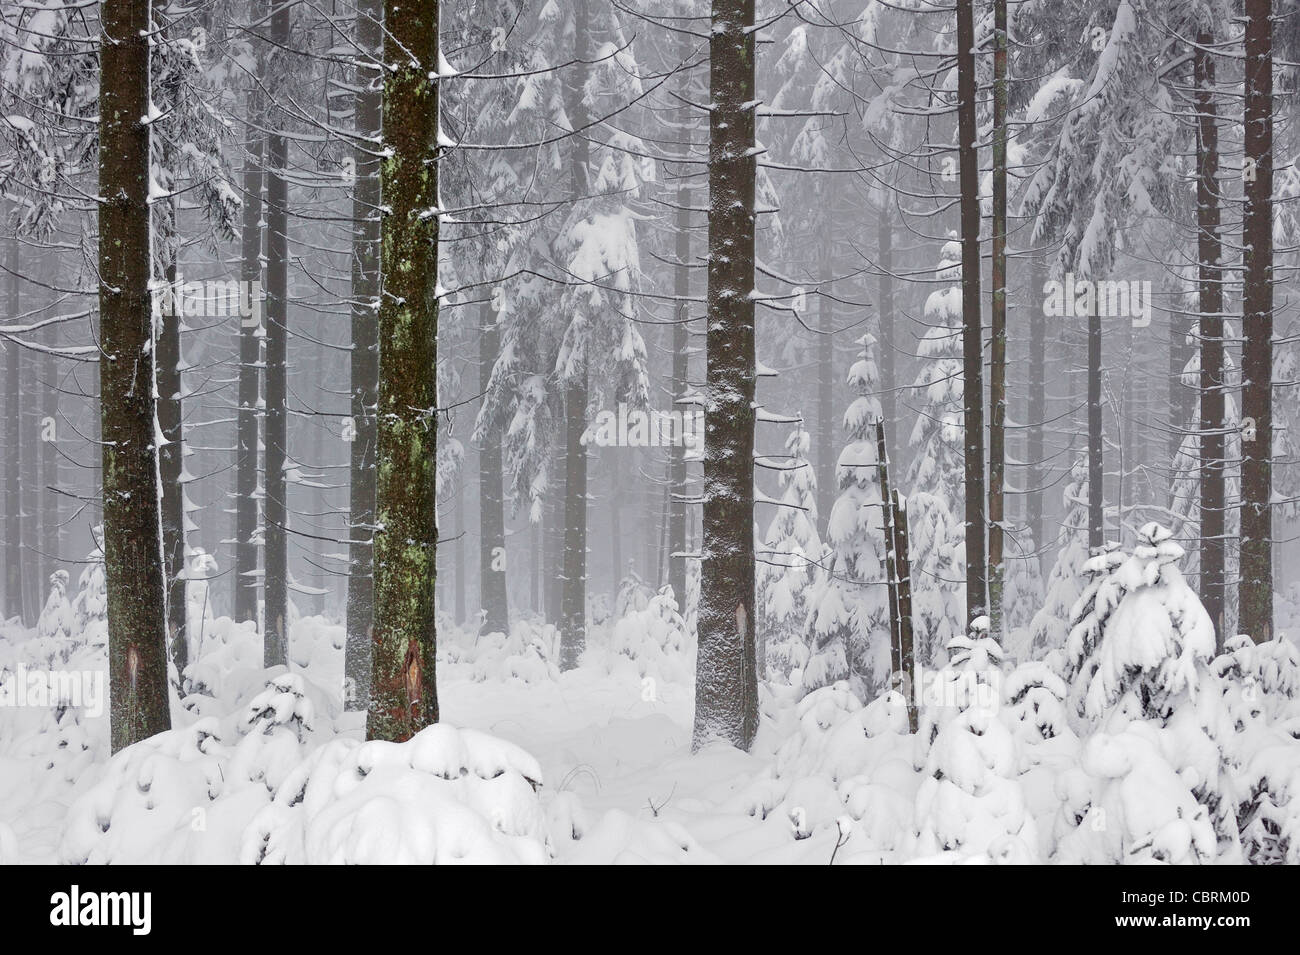 Pine tree trunks and branches covered in snow in forest in winter, High Fens / Hautes Fagnes, Belgium - Stock Image